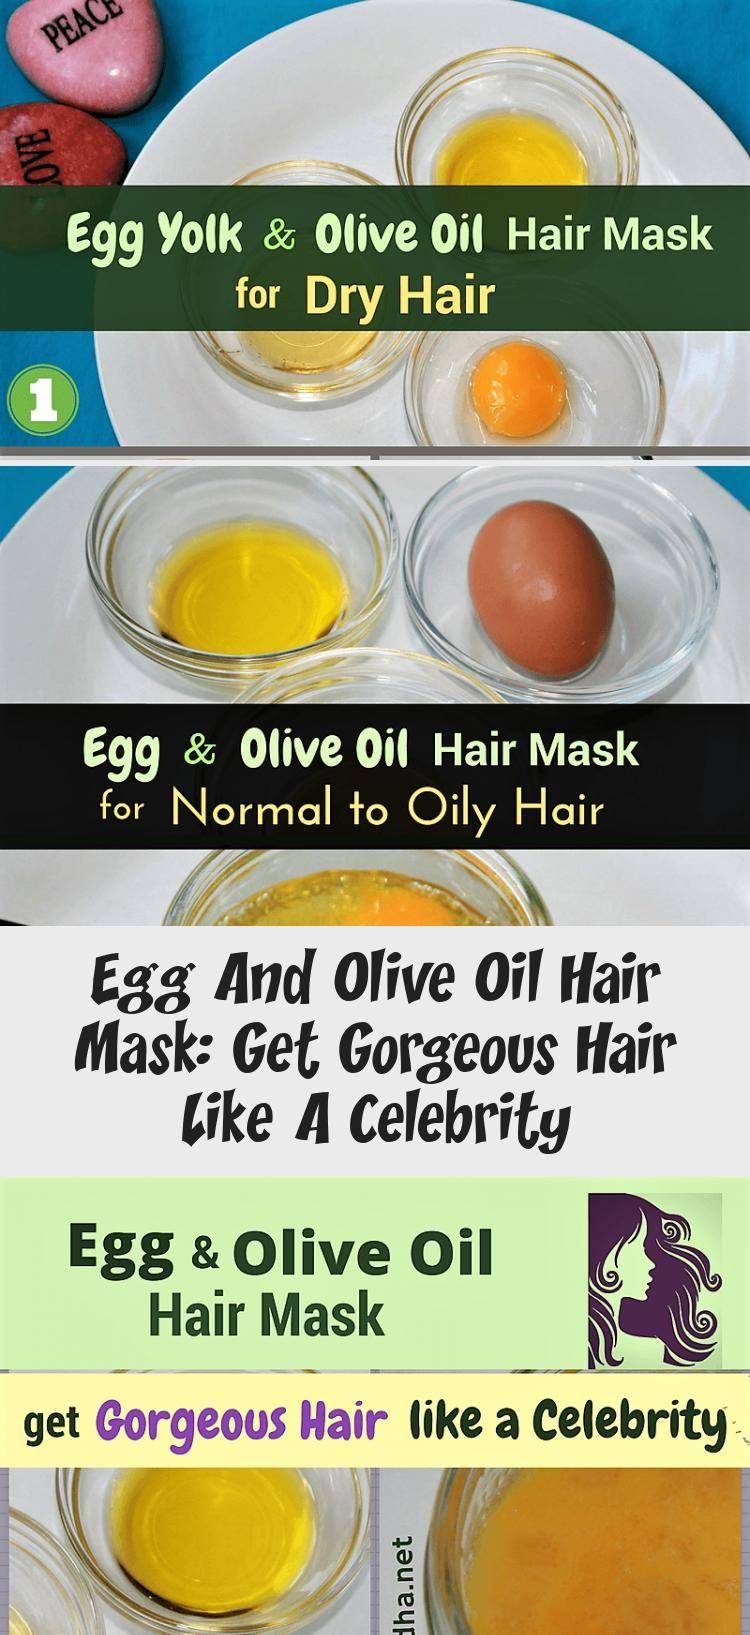 Vitamins for Hair Growth} and olive oil and egg hair mask for hair growth #Quickhairgrowth #Sulfur8hairgrowth #hairgrowthRecipes #hairgrowthPixie #AppleCiderVinegarhairgrowth